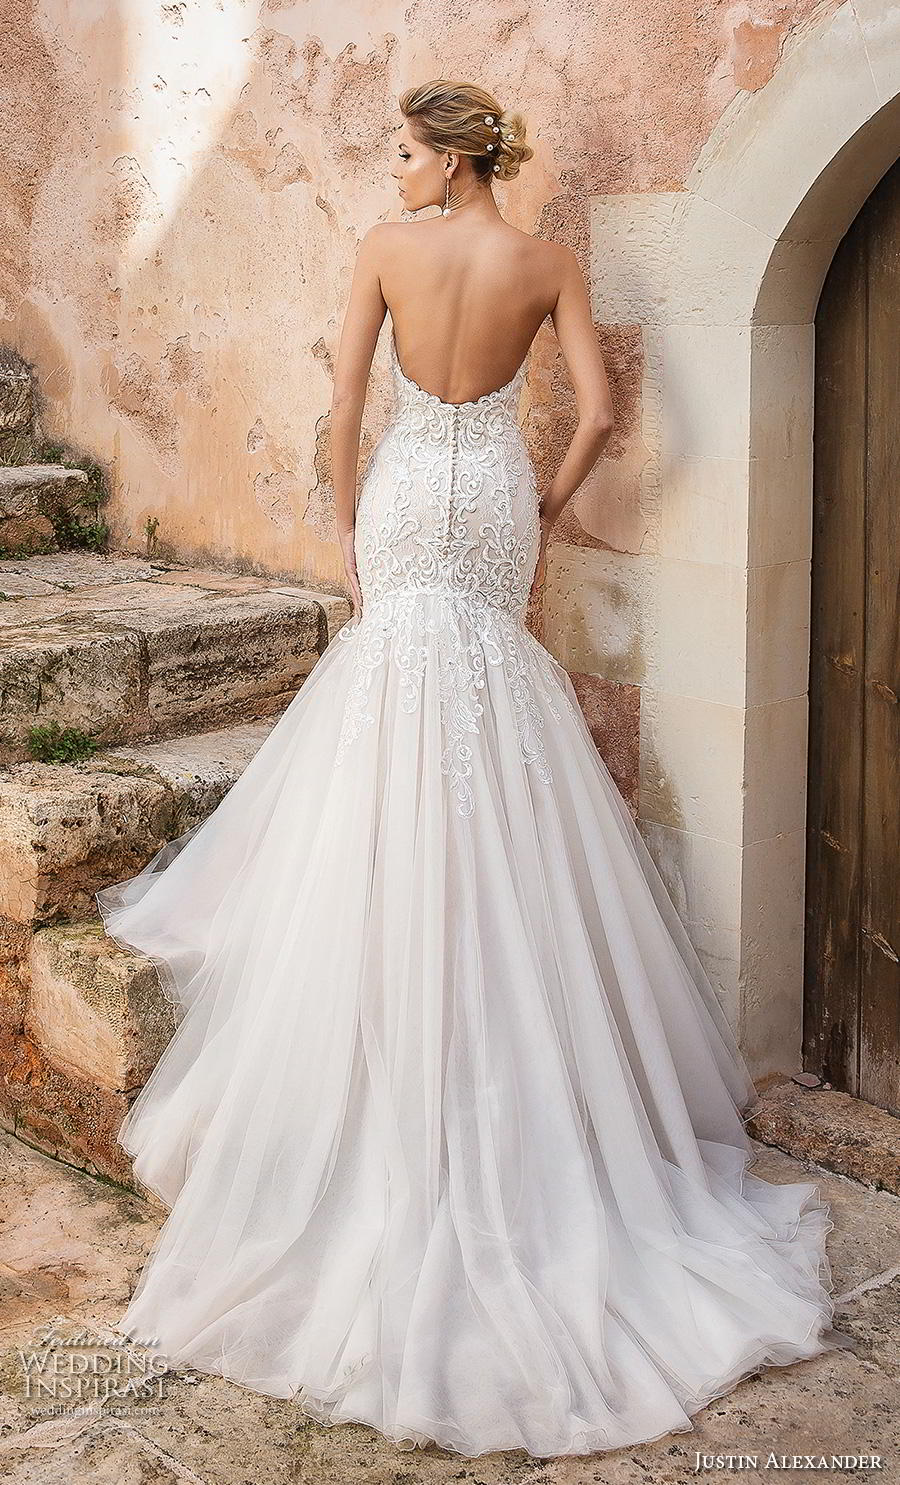 justin alexander spring 2019 bridal strapless sweetheart neckline full embellishment elegant romantic mermaid wedding dress backless chapel train (8) bv